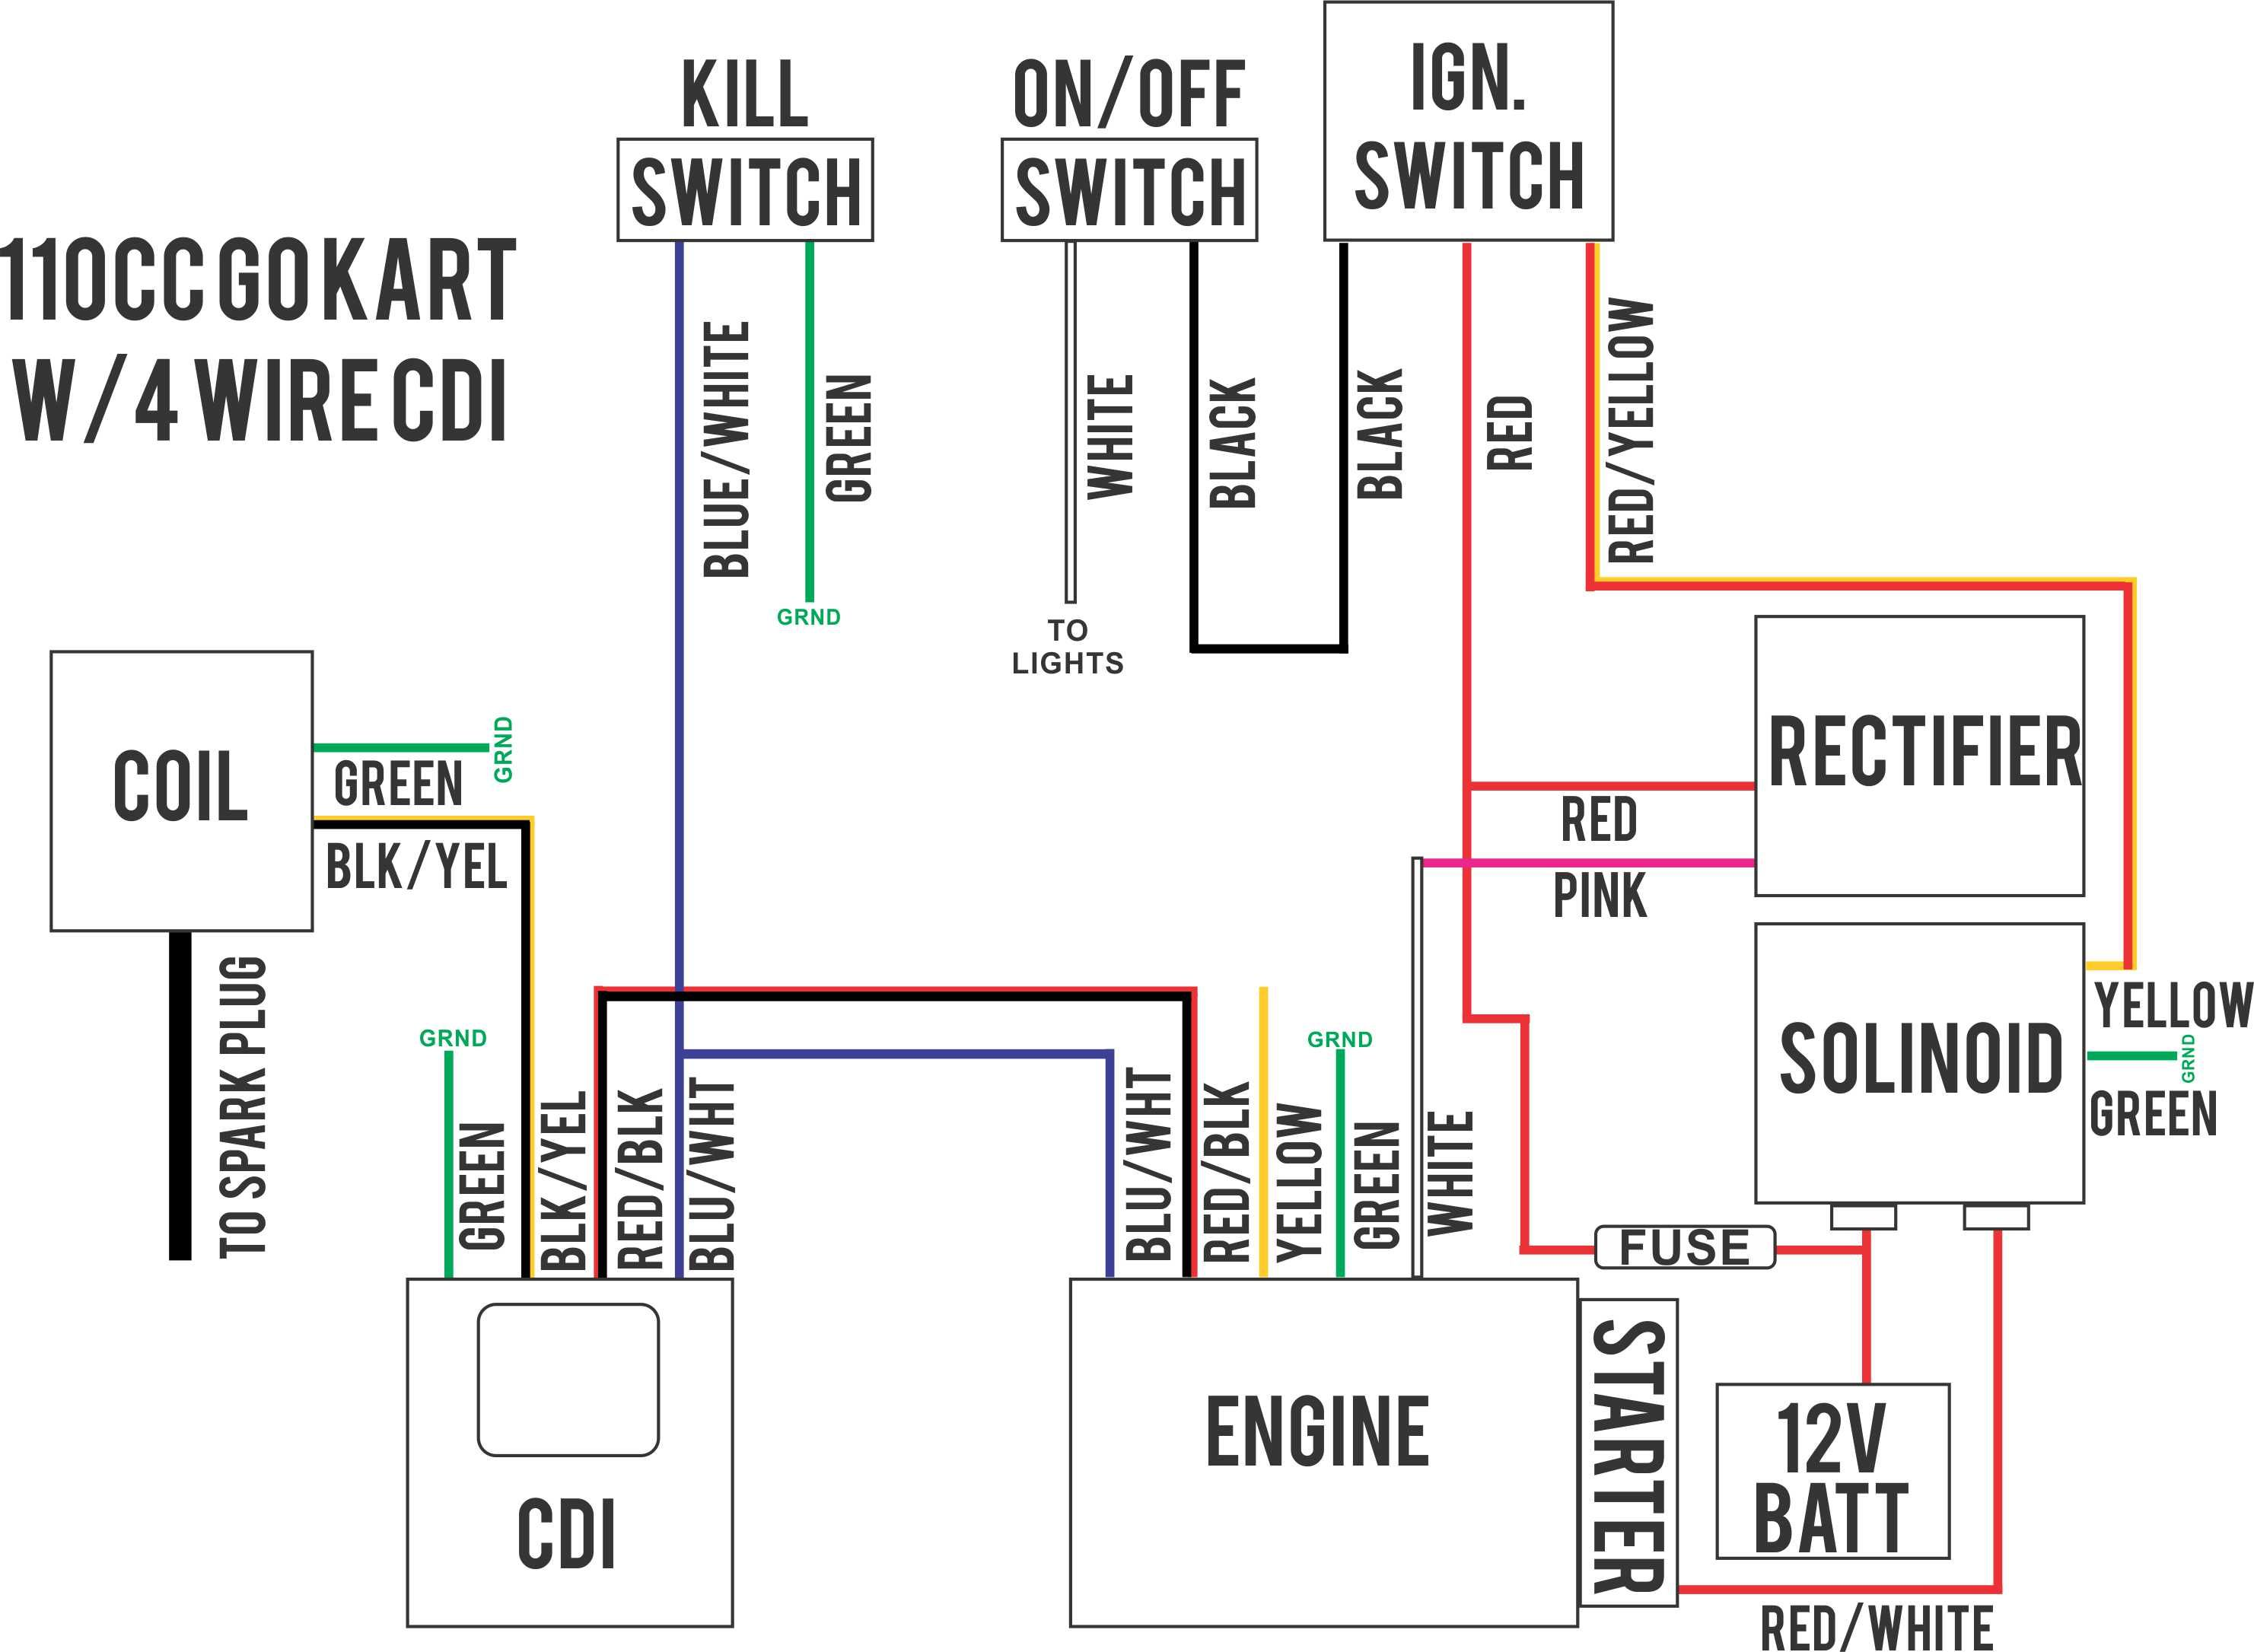 Wiring Diagram 110cc Atv How To Wire Chinese Atv Picturesque 110 For Diagrama De Instalacion Electrica Electrica Diagrama De Circuito